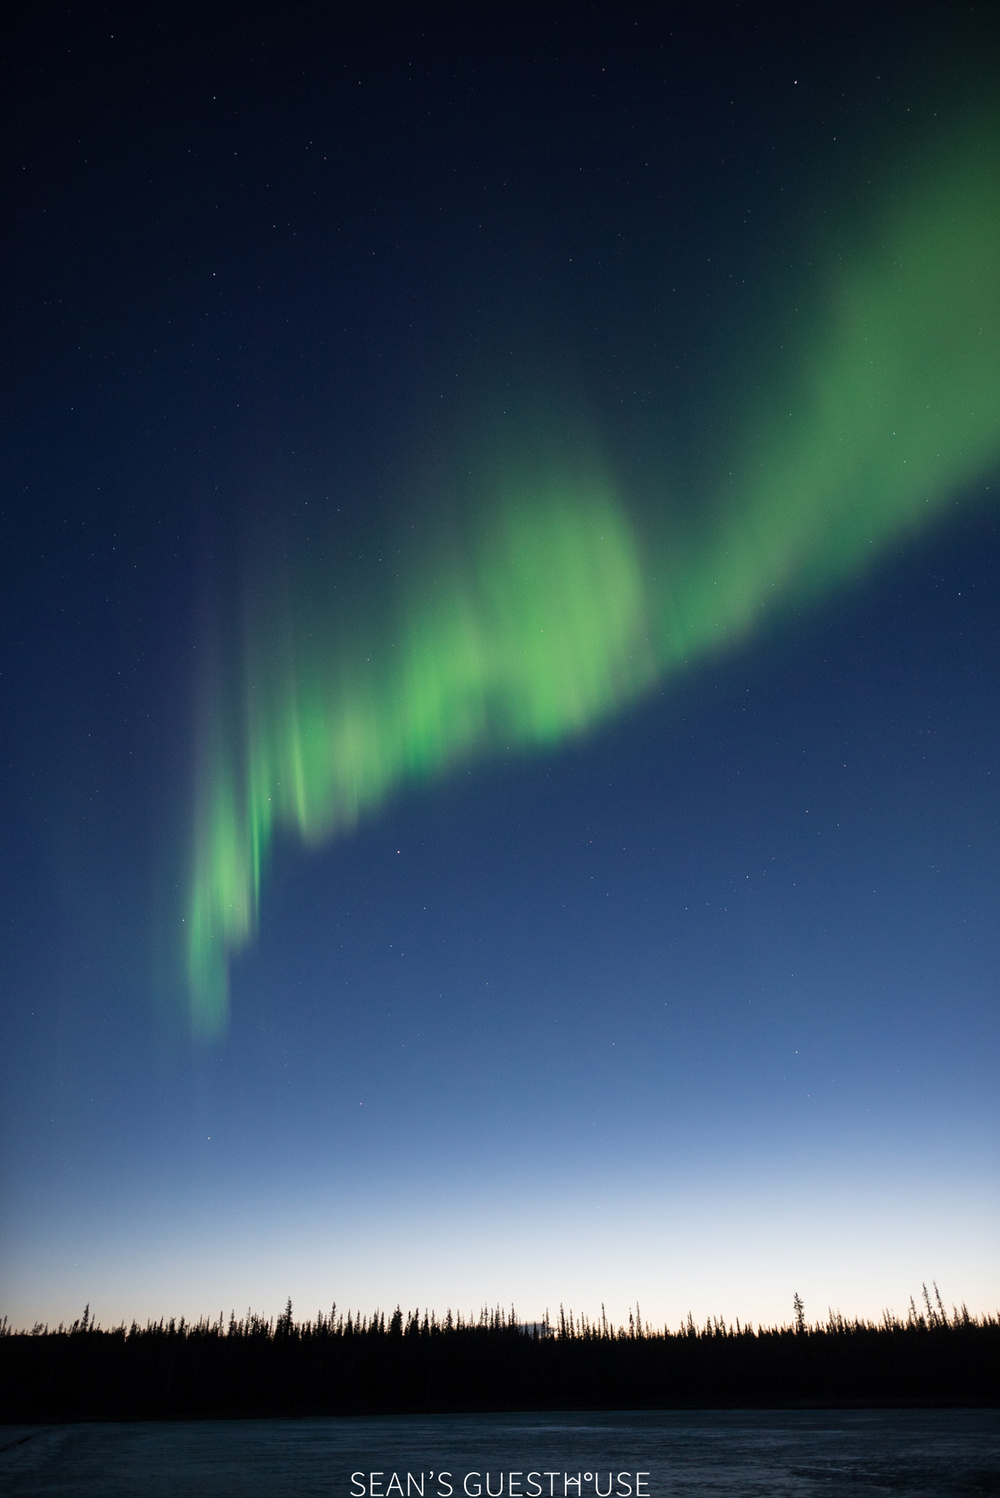 Sean's Guesthouse - The Best Place to See the Aurora in Canada - 2.jpg